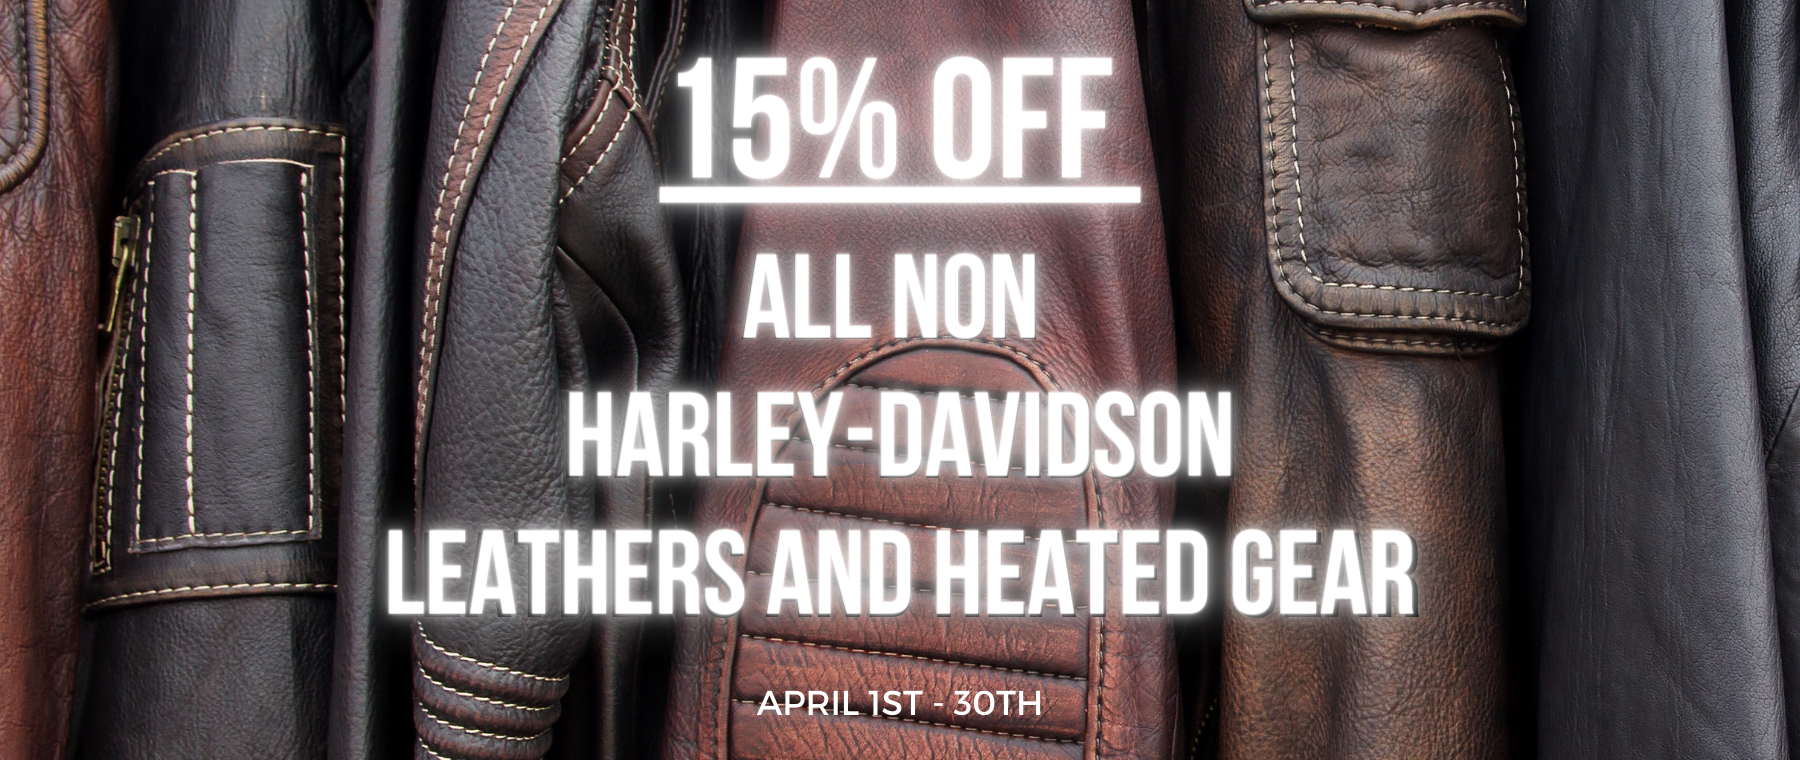 Copy of Copy of 15% off Harley-Davidson Leathers and Heated Gear (1)